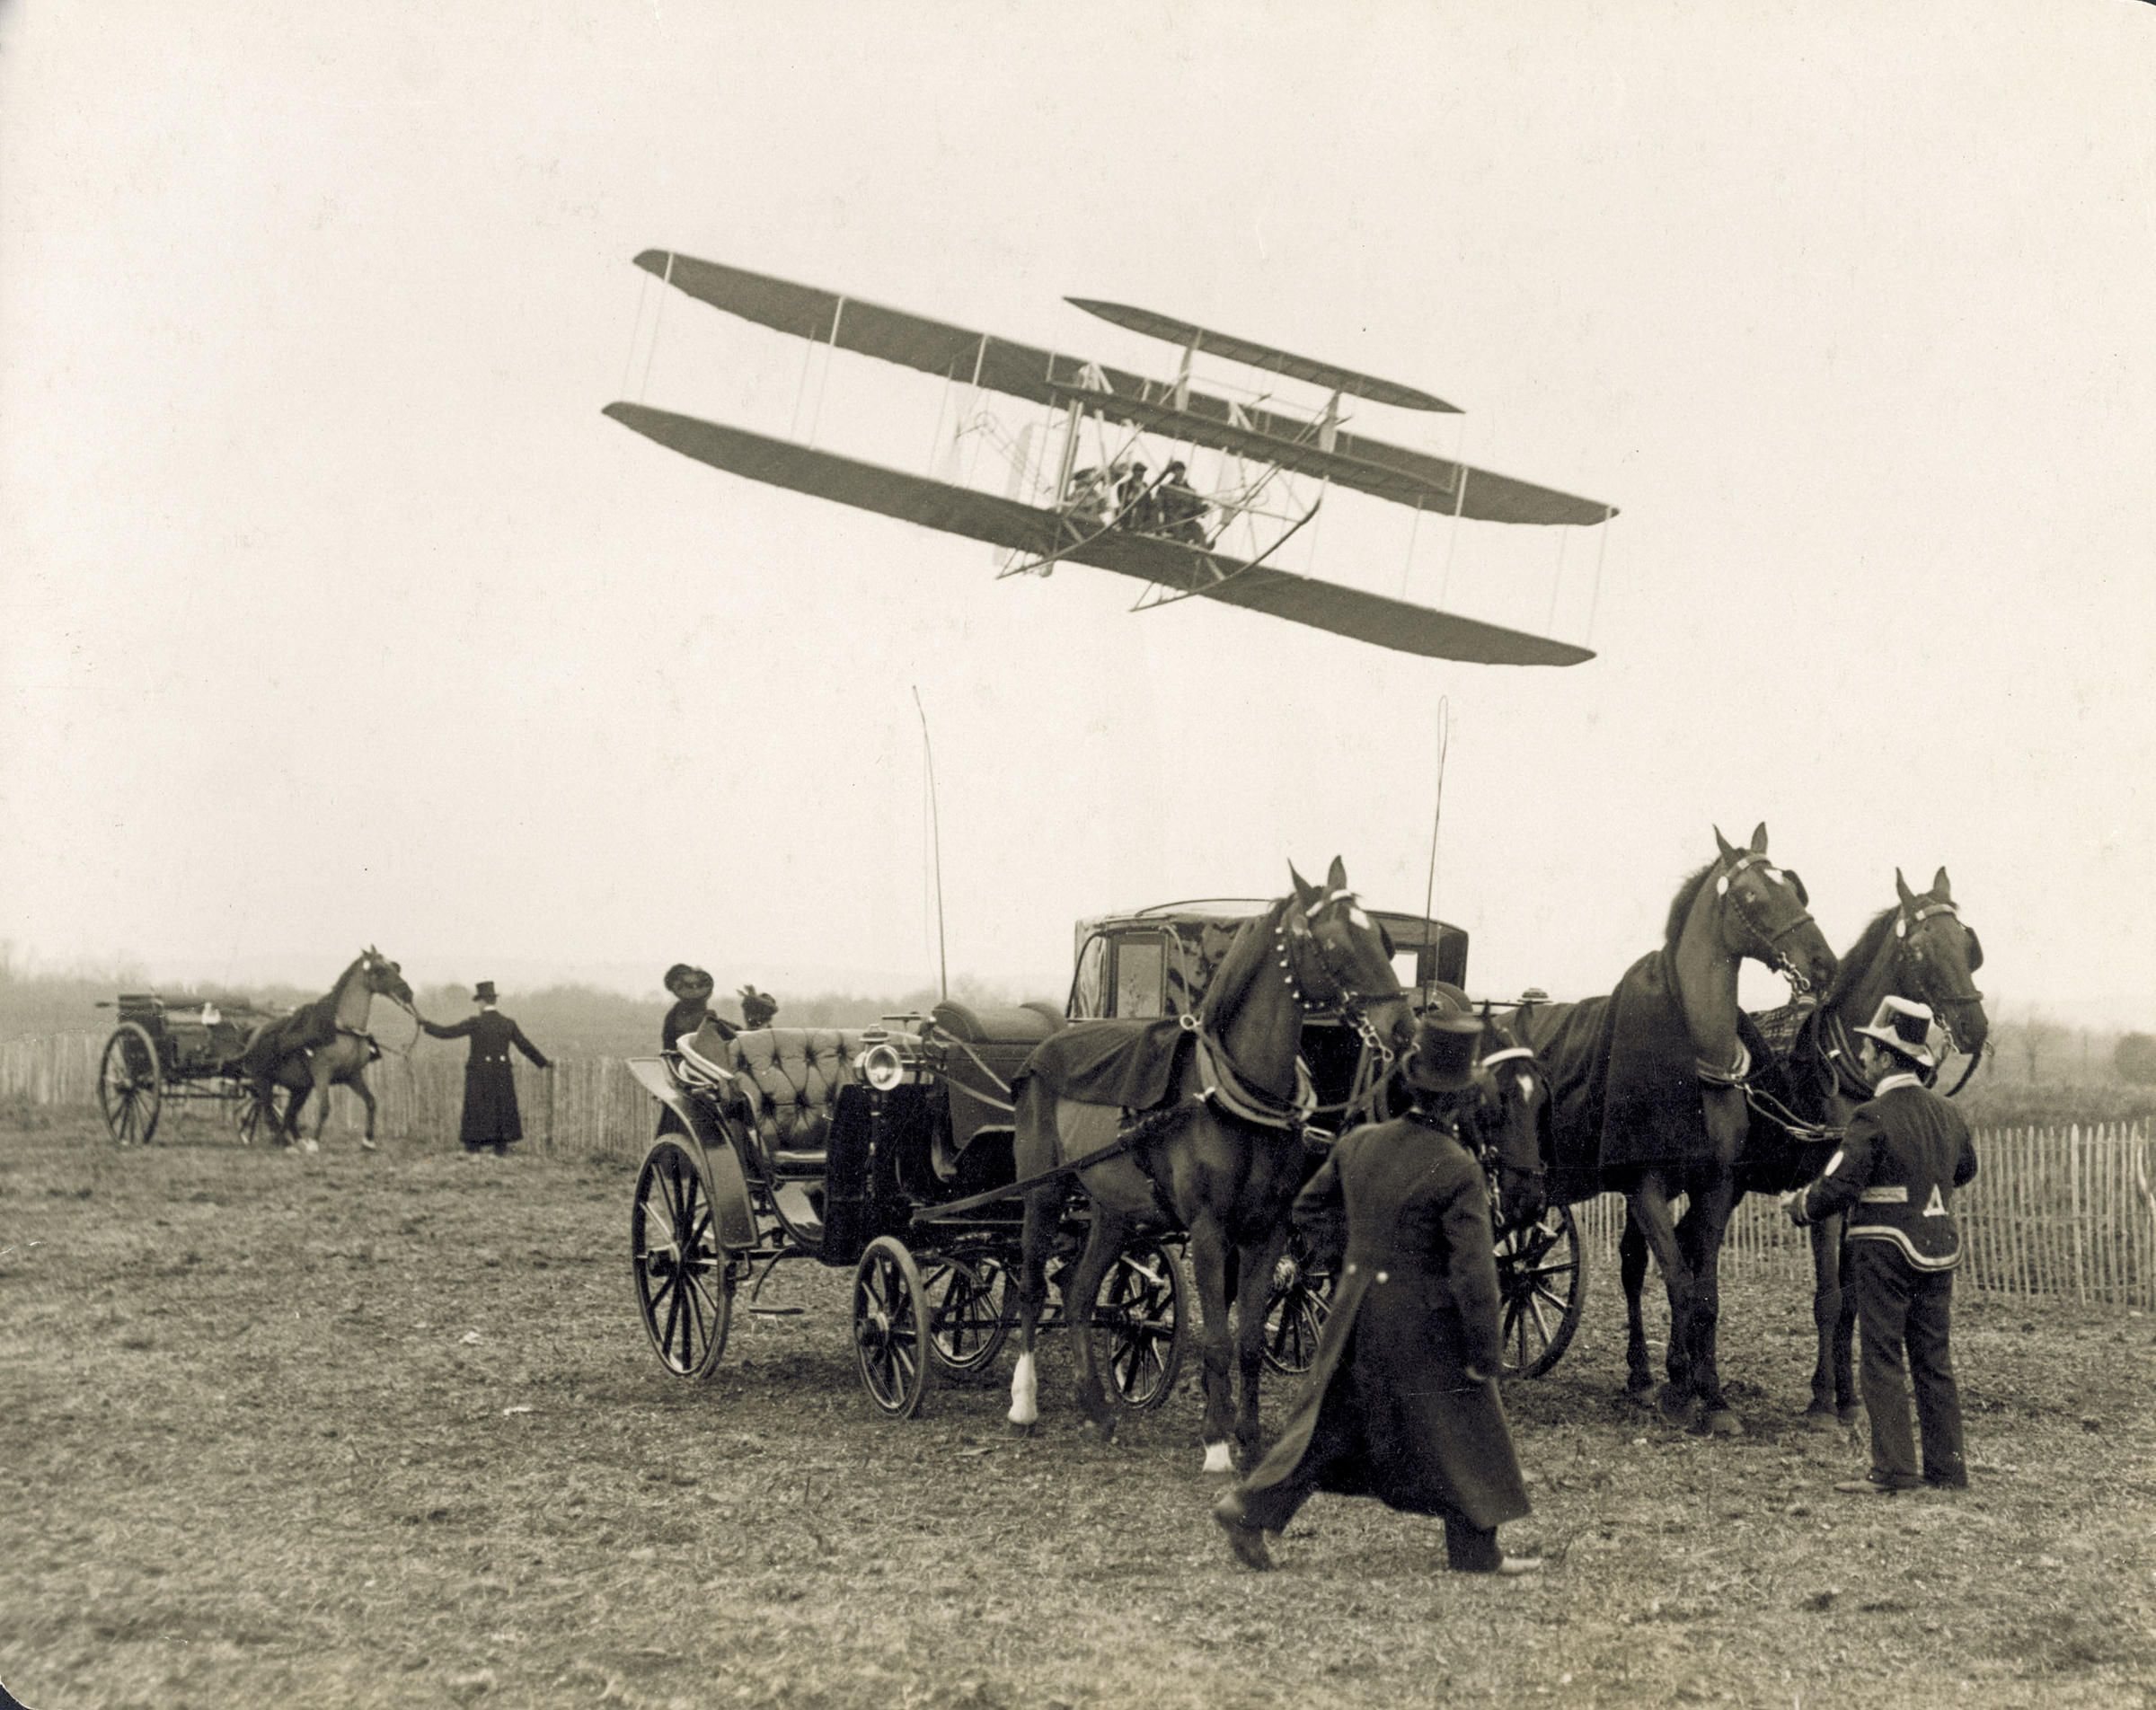 Wright Brothers Flight for wright brothers legacy archived at wright state university | wyso